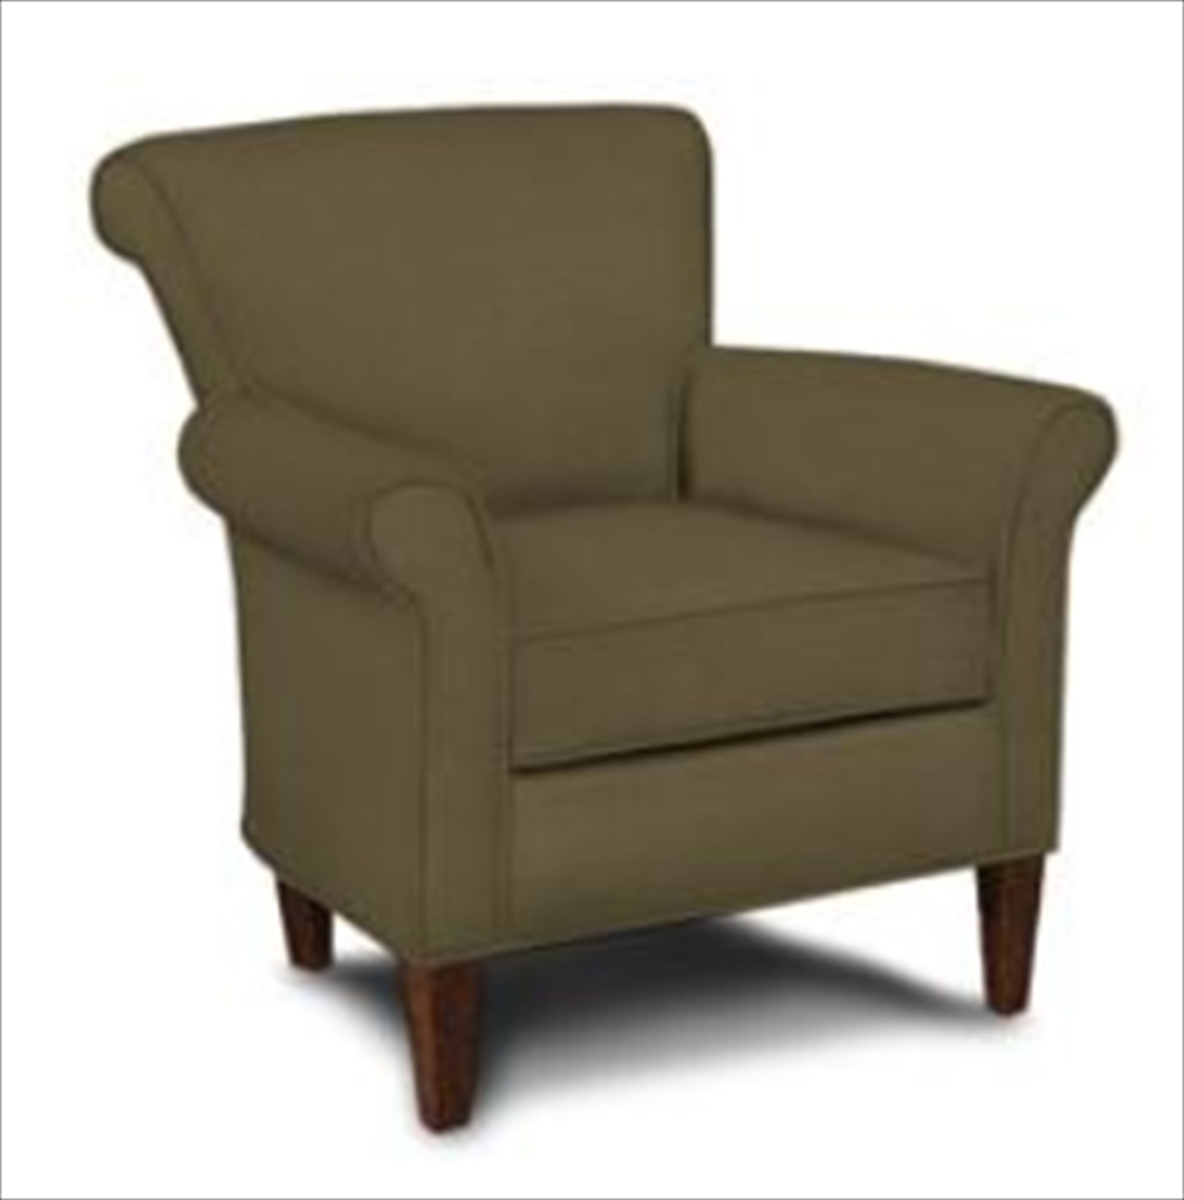 Klaussner Louise Chair - Willow Olive